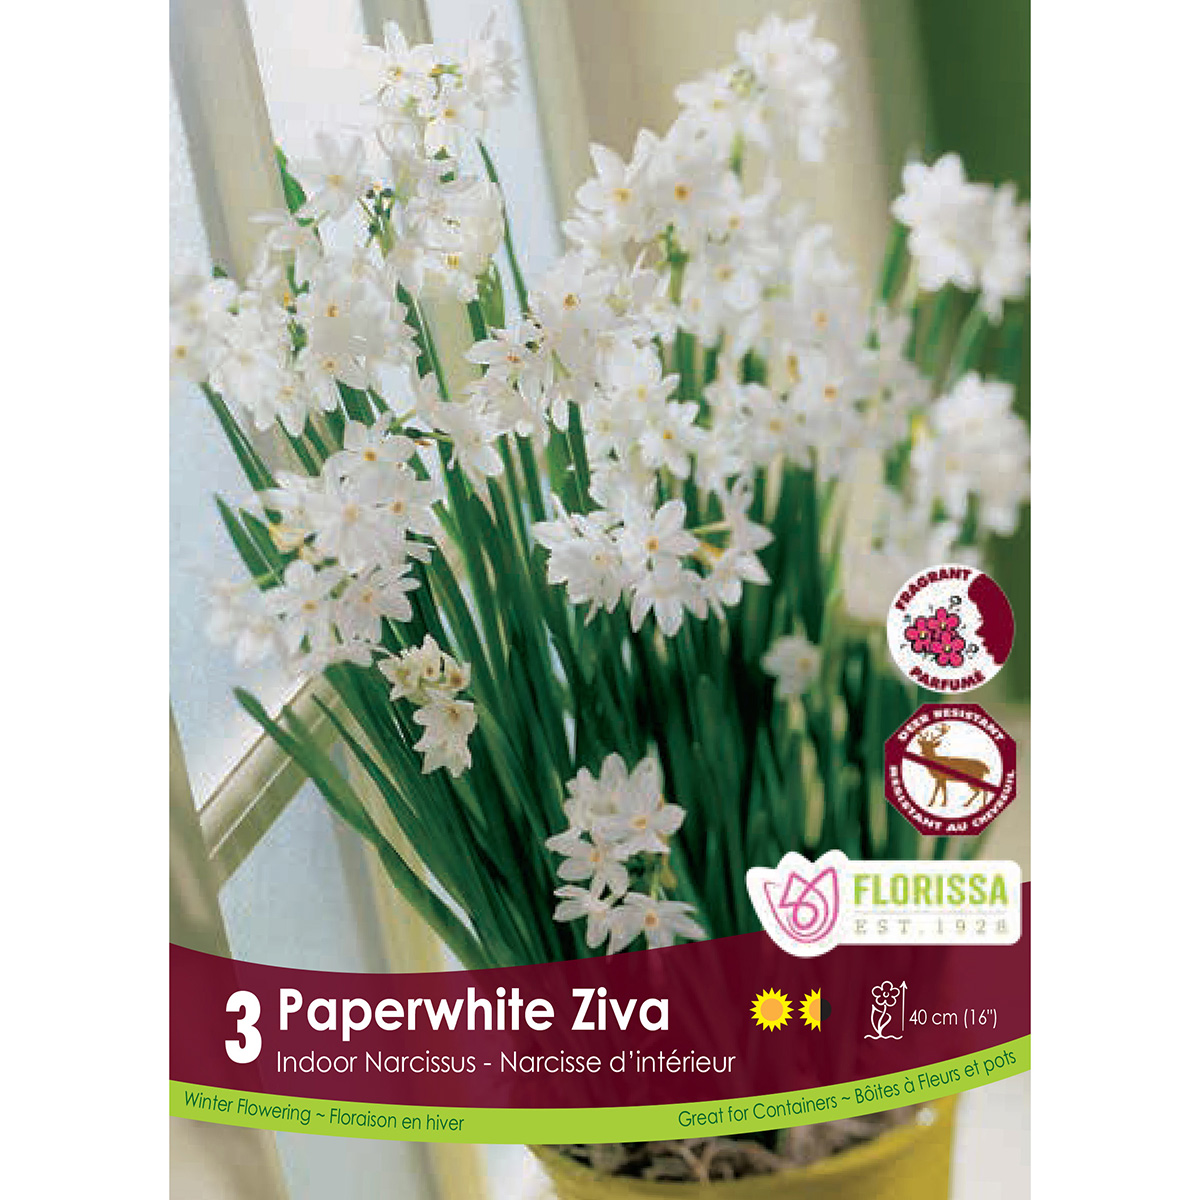 Narcissus 'Paperwhite Ziva Indoor' Bulbs